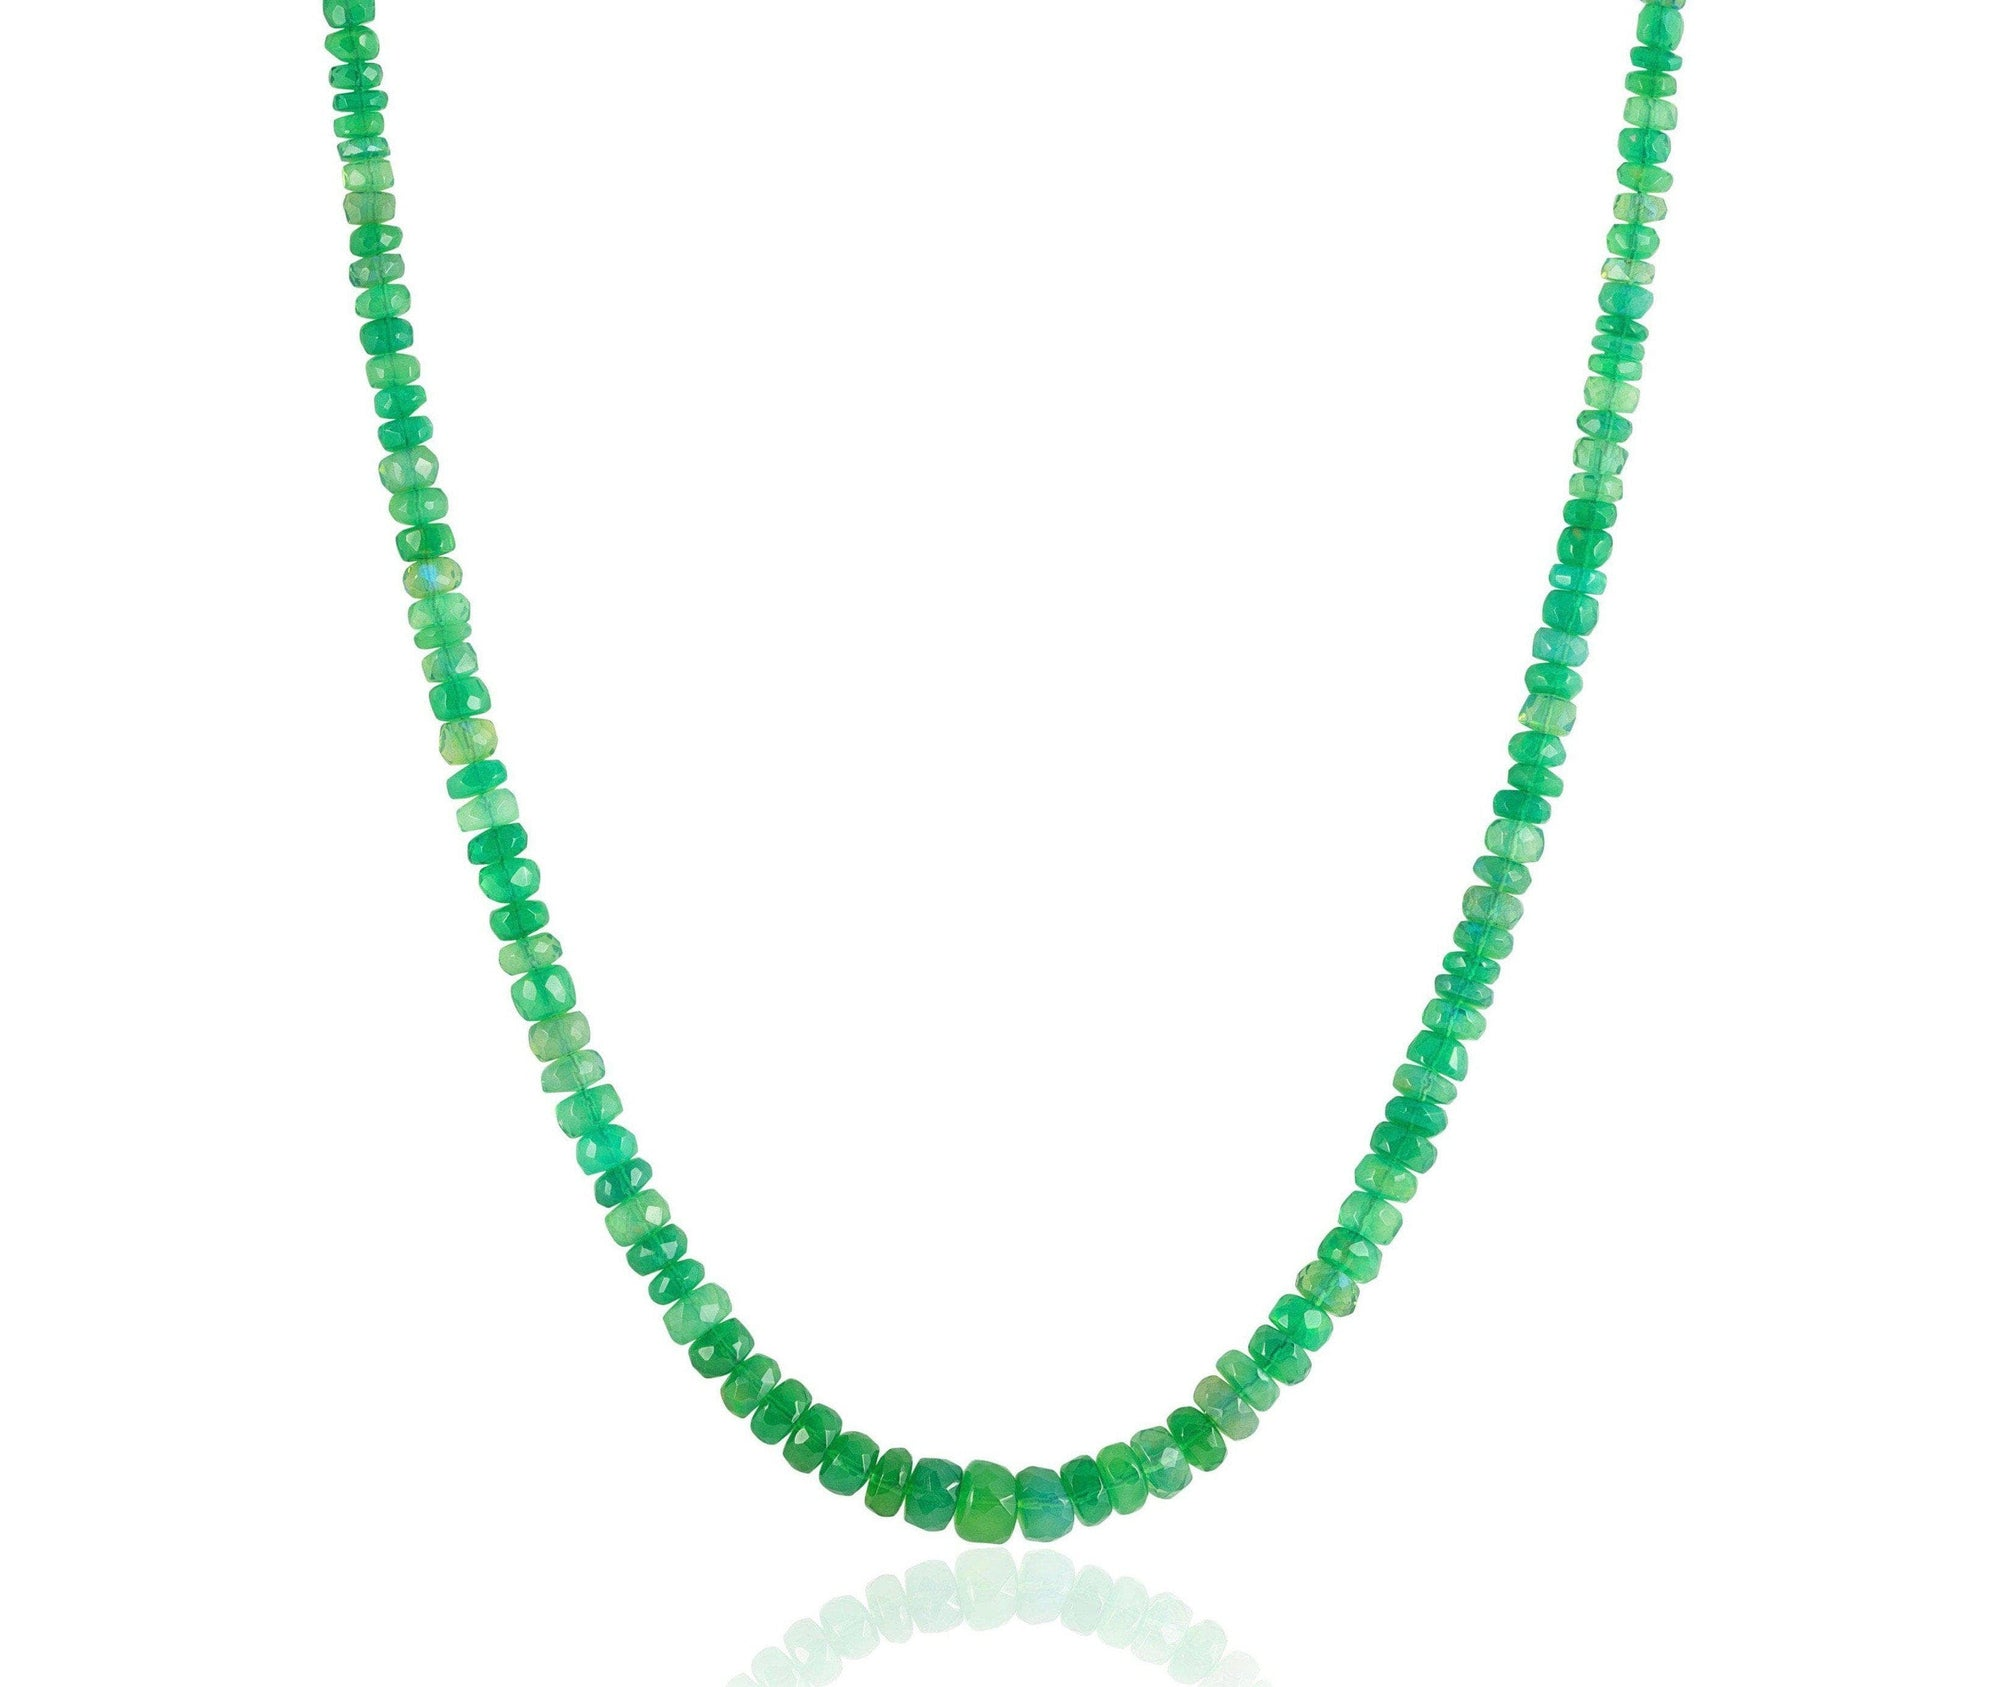 Green Ethiopian Opal Candy Necklace